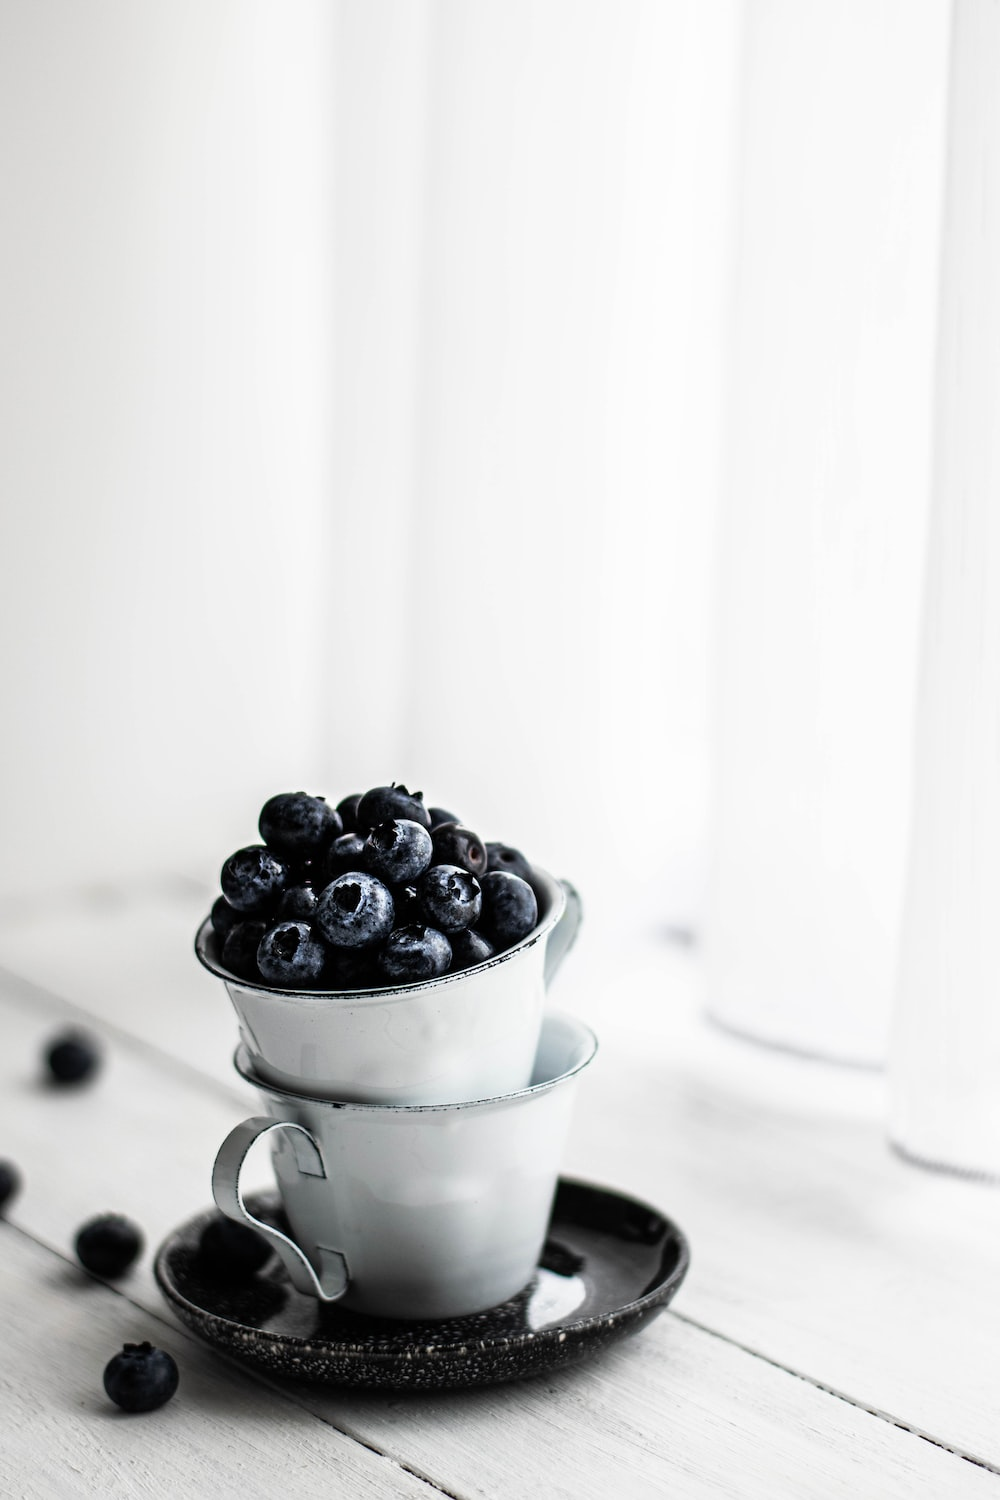 bucket of black berries